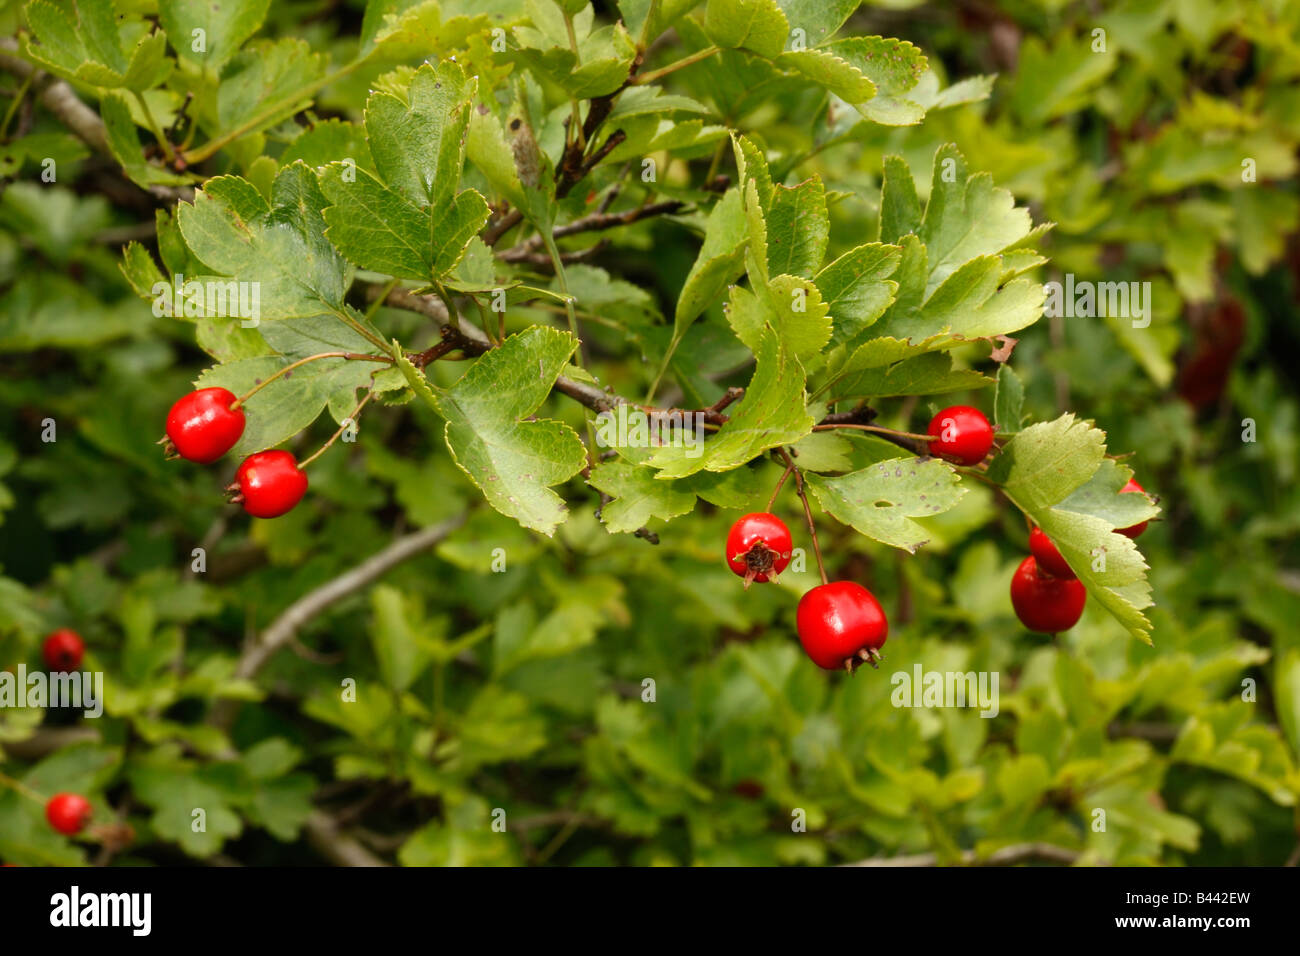 Hawthorn tree or bush Crataegus monogyna berries Midlands UK - Stock Image